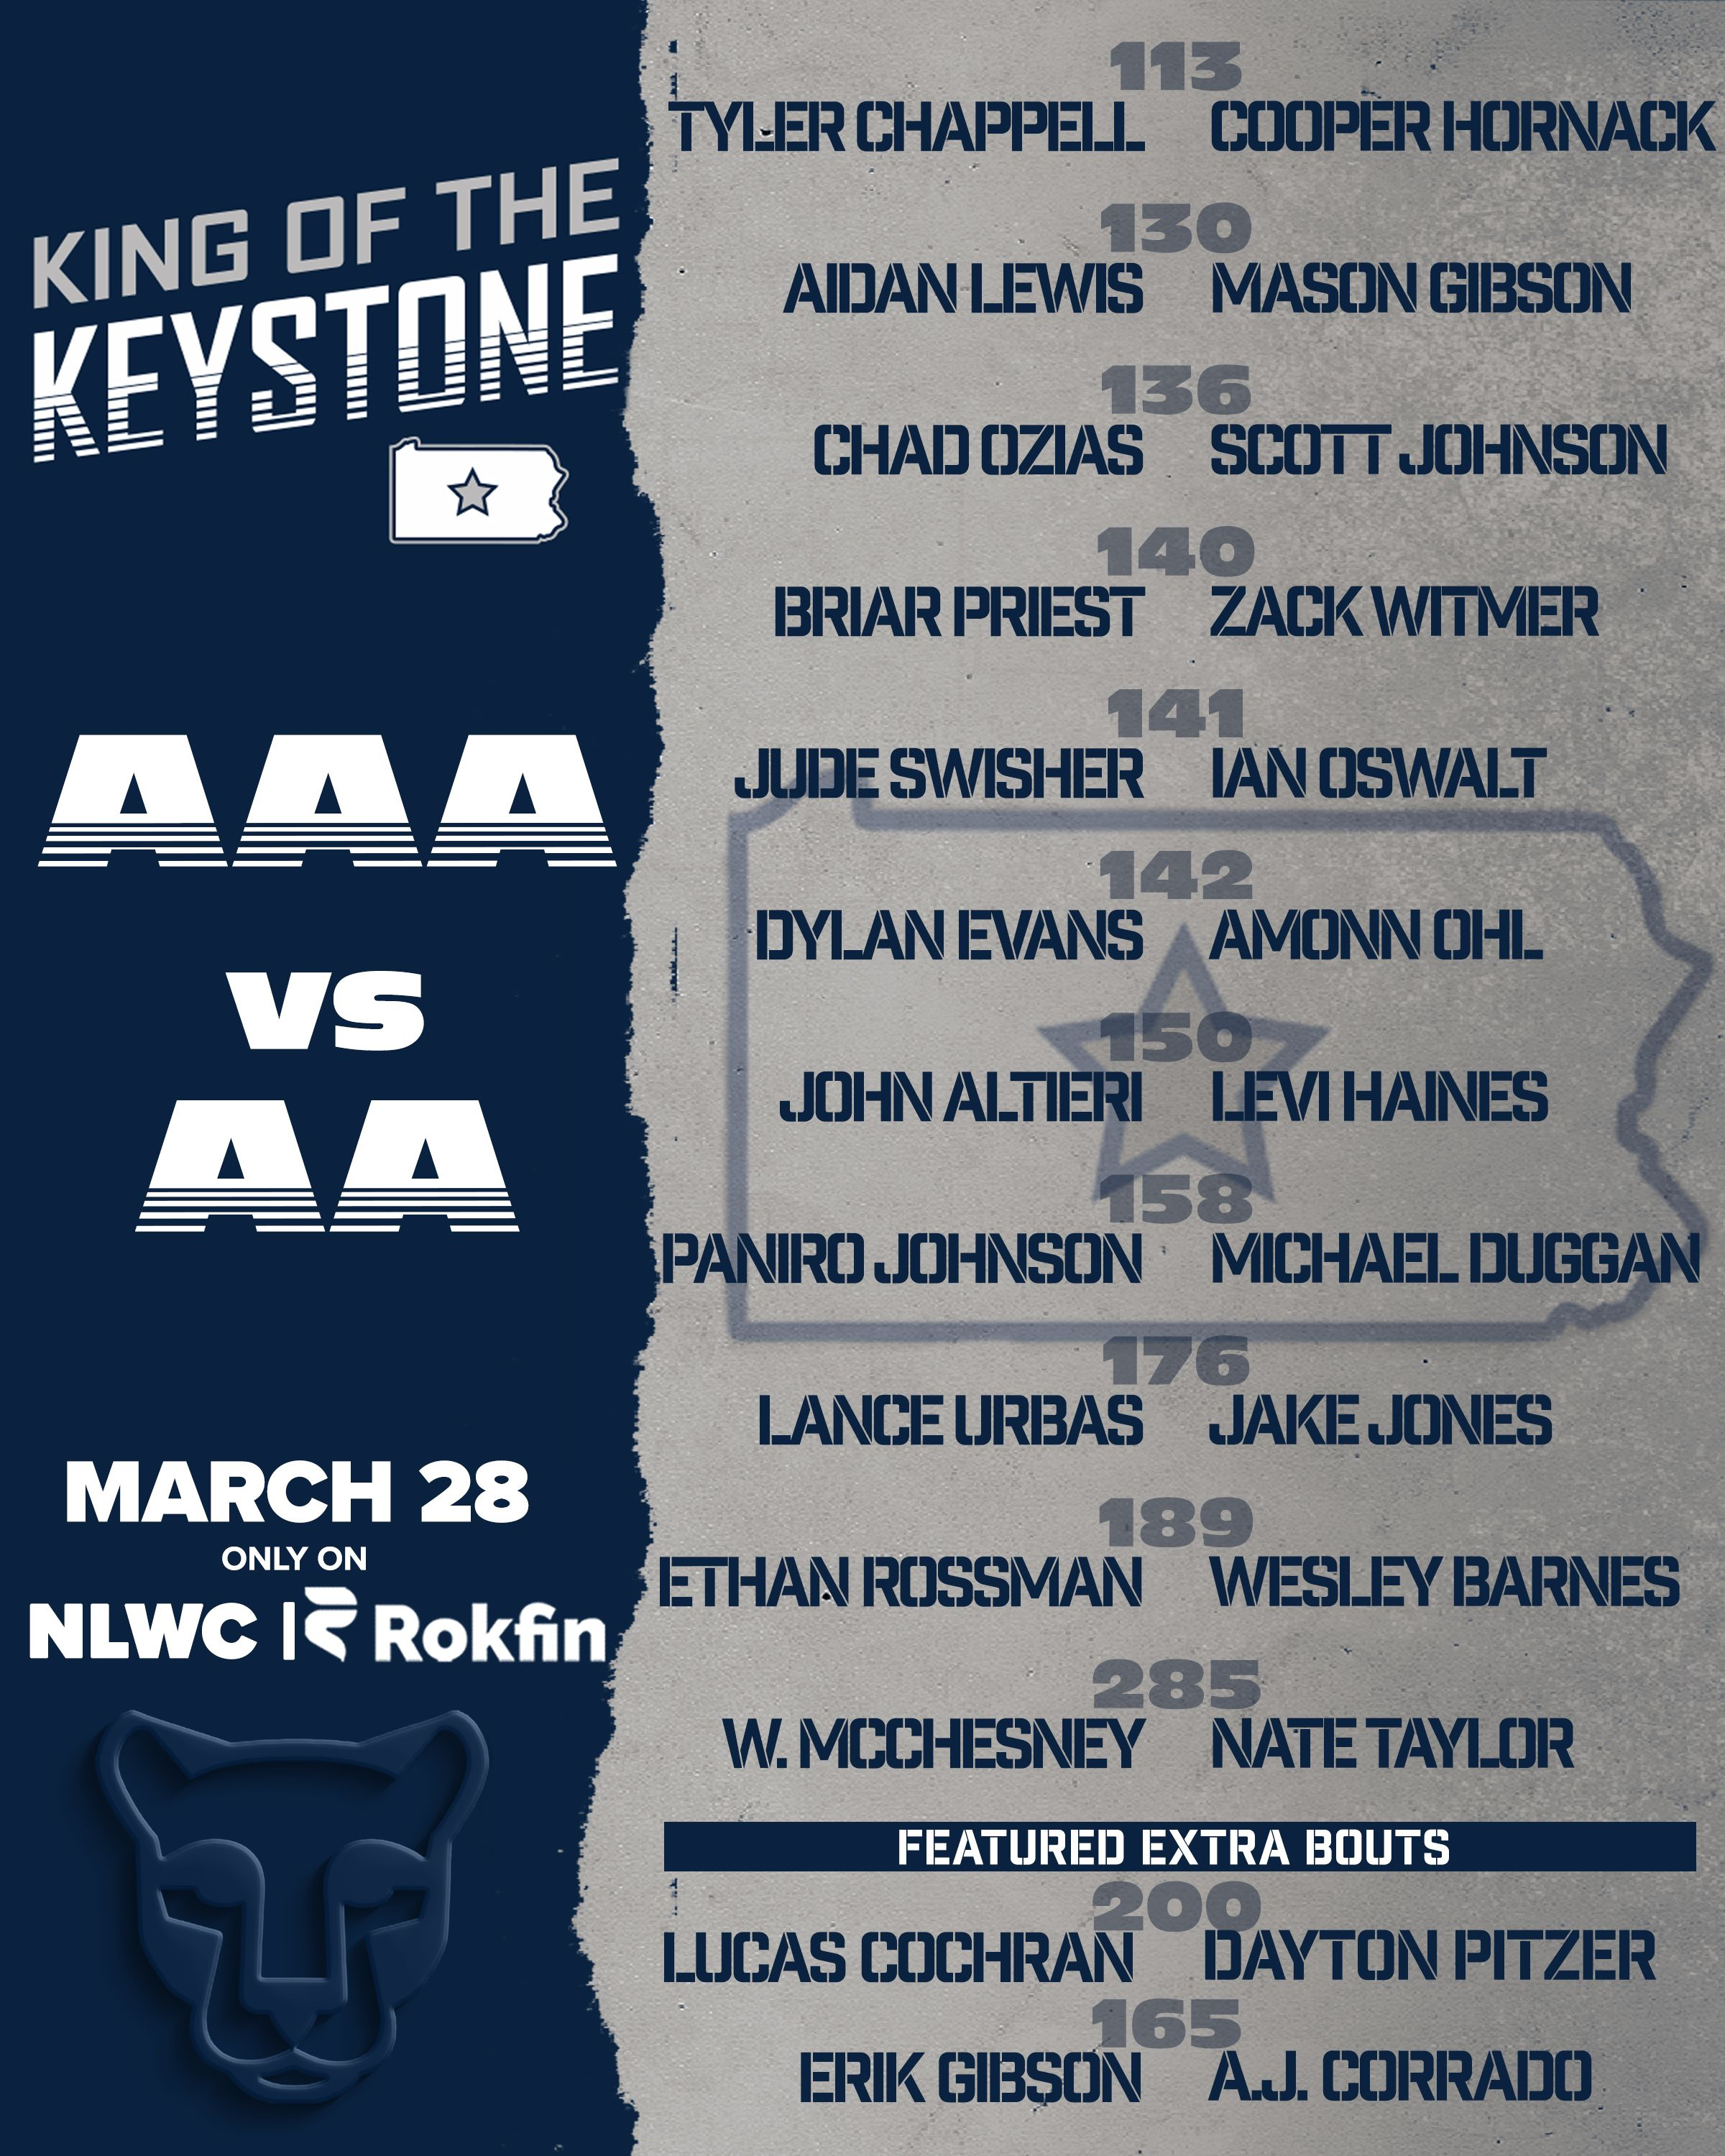 """""""King of the Keystone"""" Rokfin Event Sunday March 28th"""